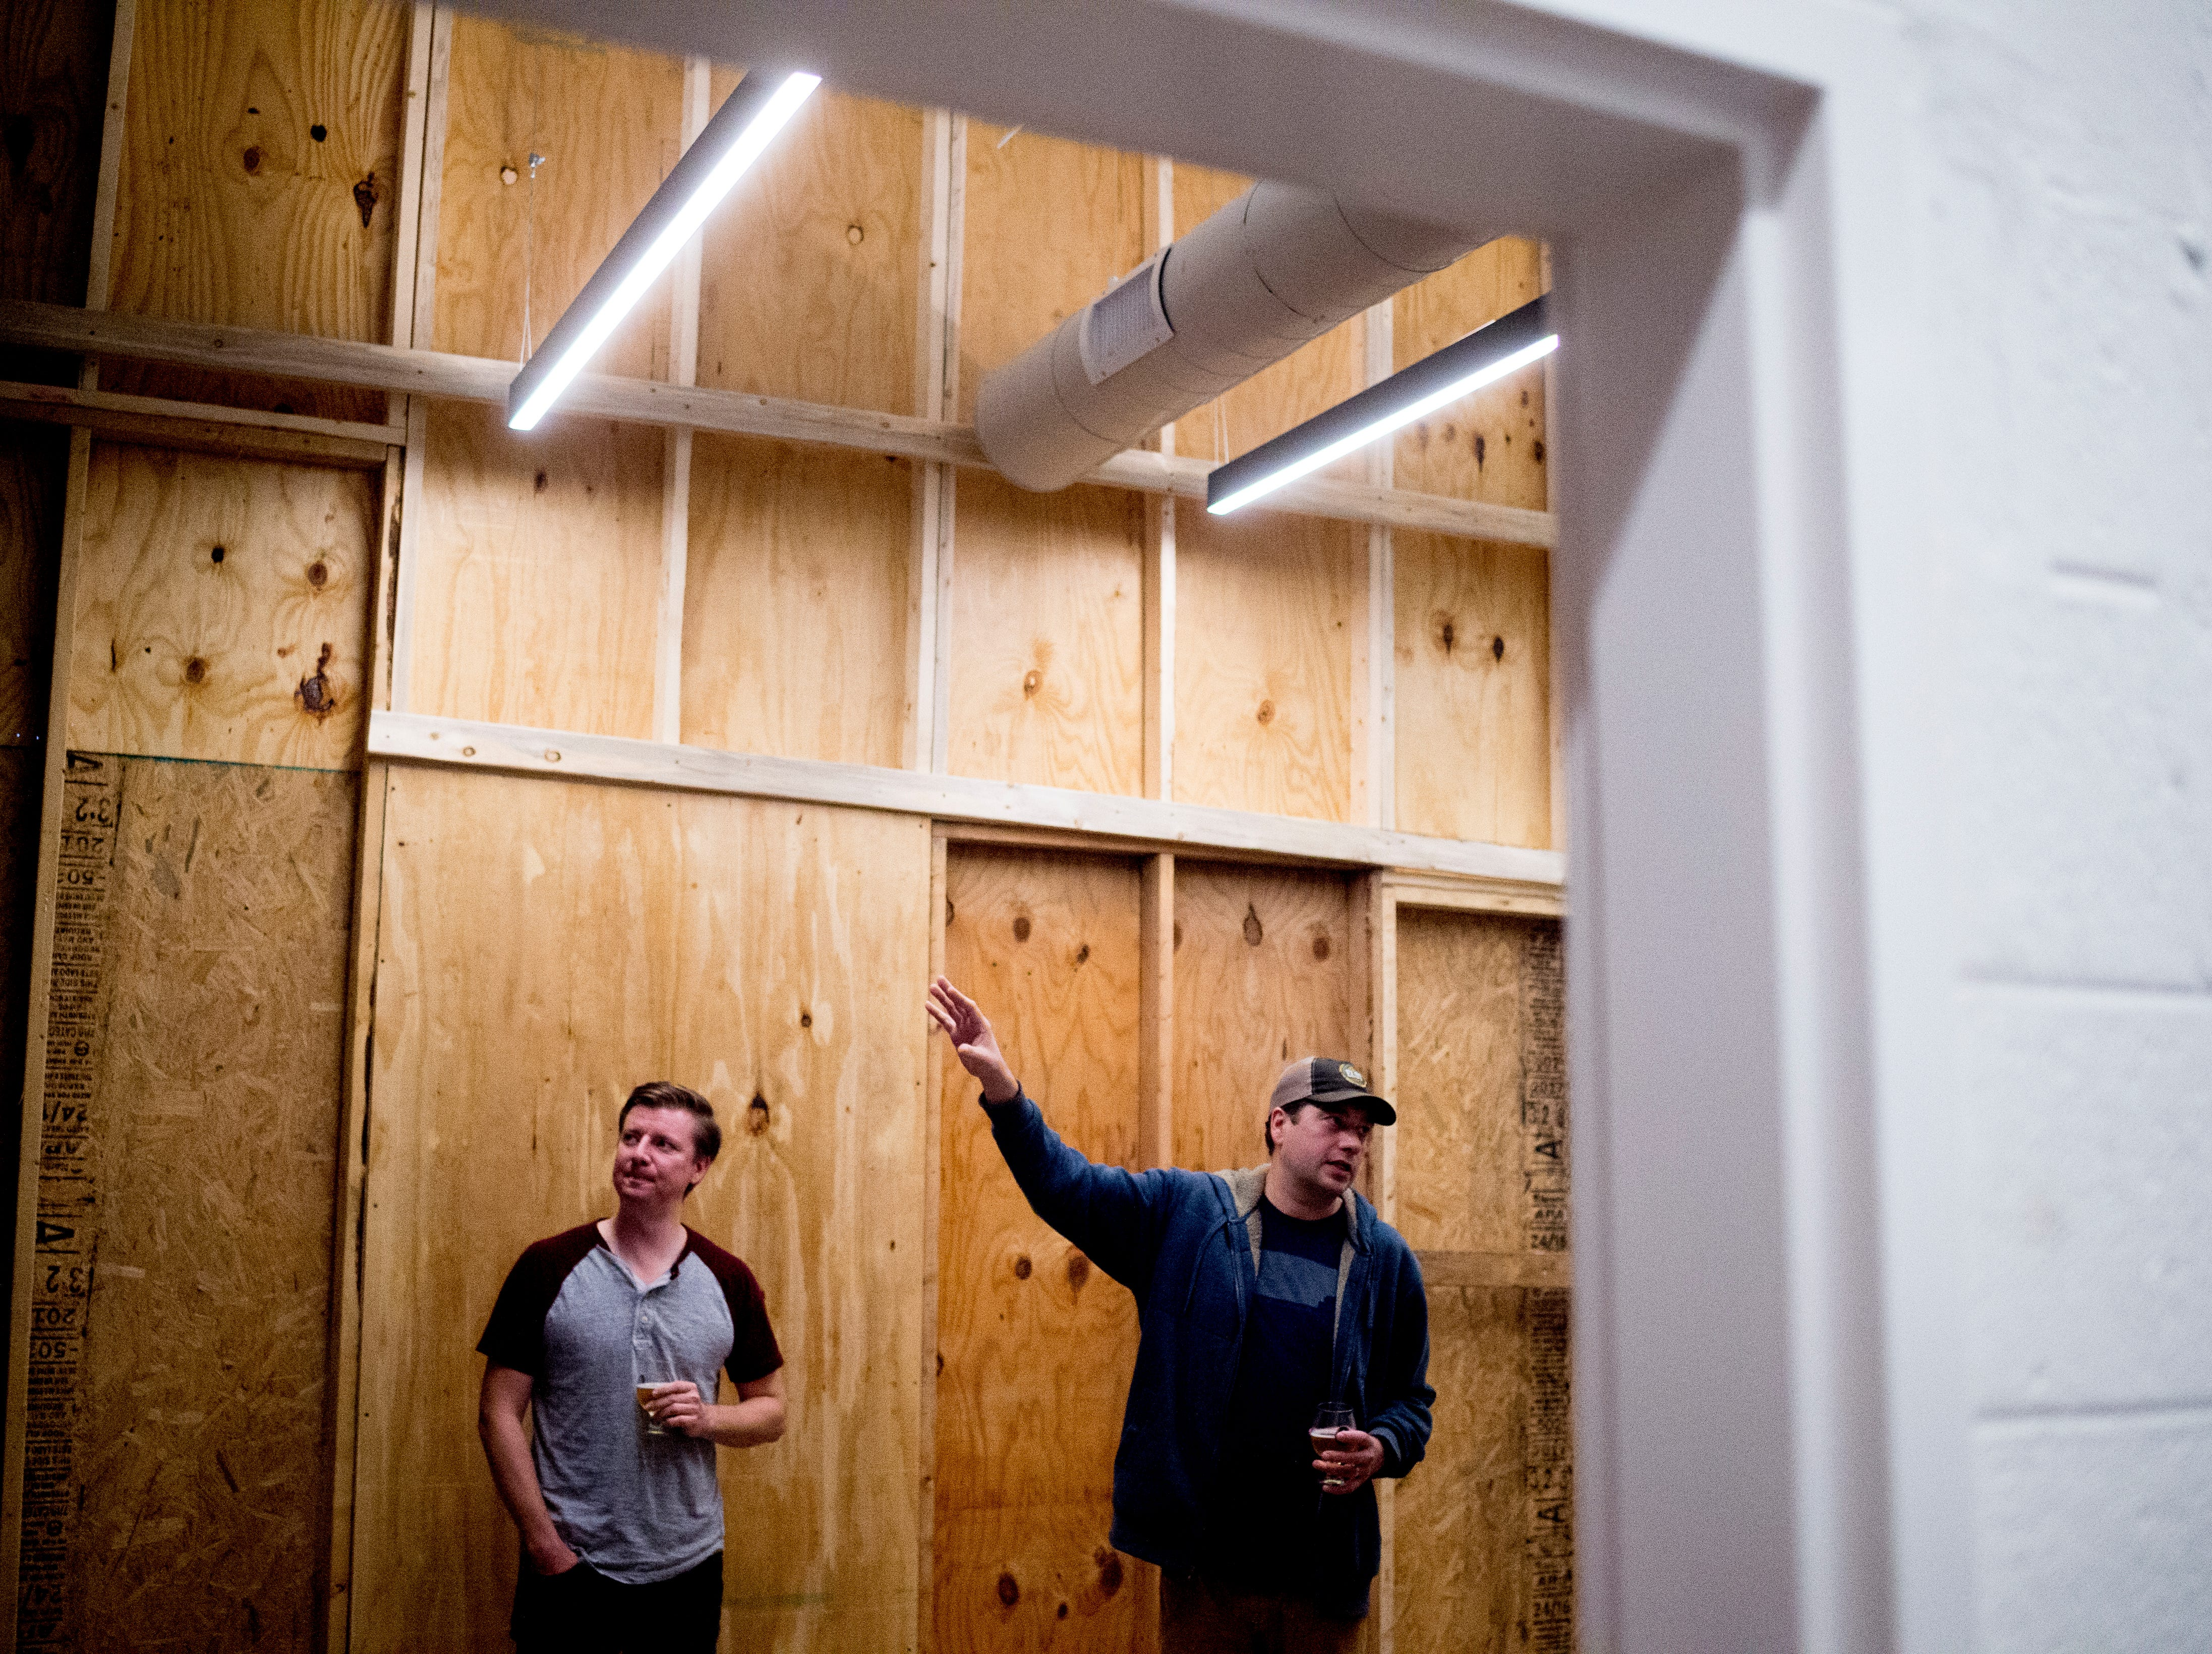 Chris Hall and Shane Todd give a tour of the lobby area of the brewery at Elst Brewing Company on 2417 N Central St. in Knoxville, Tennessee on Thursday, November 1, 2018. Elst plans to open its door beginning next year.